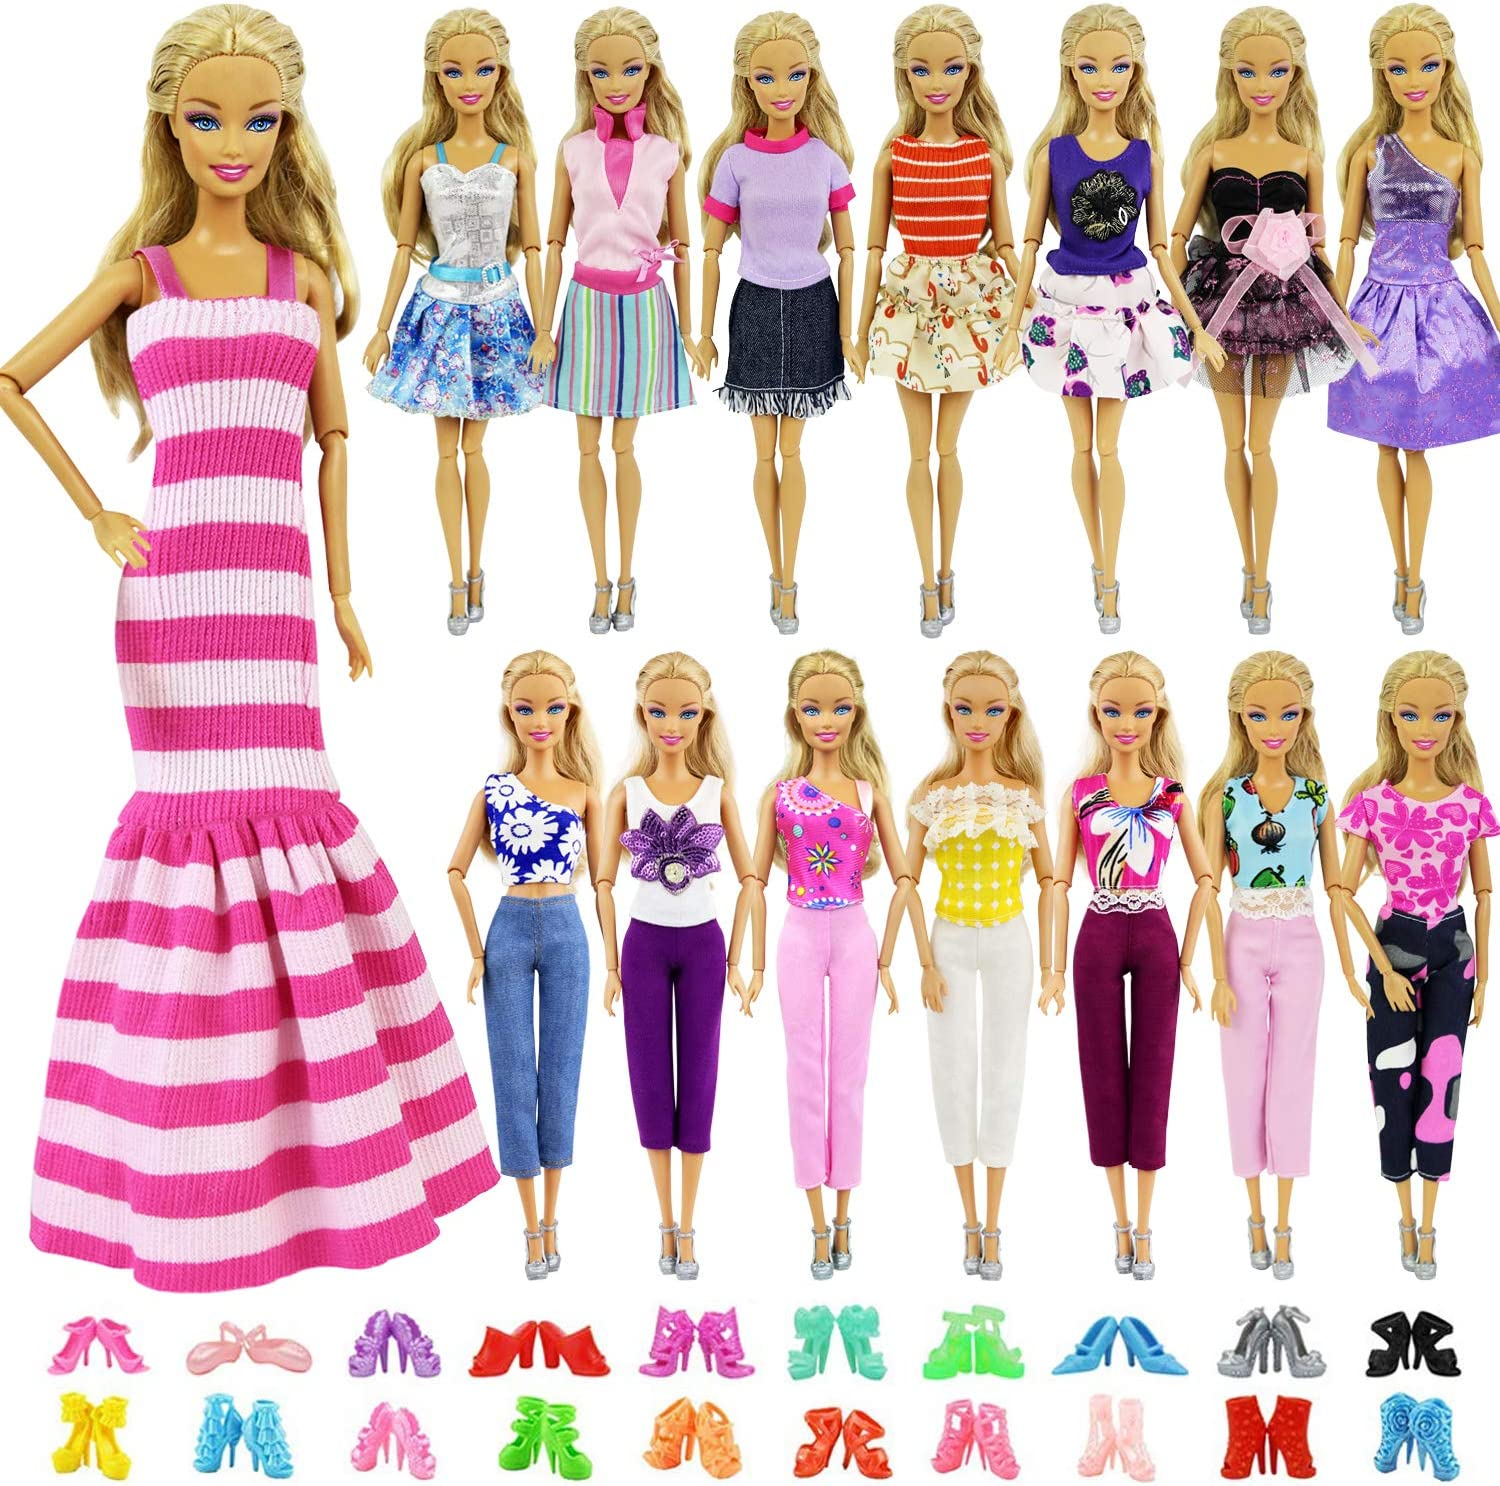 Amazon Com Zita Element 5 Sets Casual Wear Clothes Mix Party Dress With 5 Pairs Shoes For 11 5 Inch Girl Doll Clothes Outfits Fashion Handmade 11 5 Inch Girl Doll Clothing And Shoes